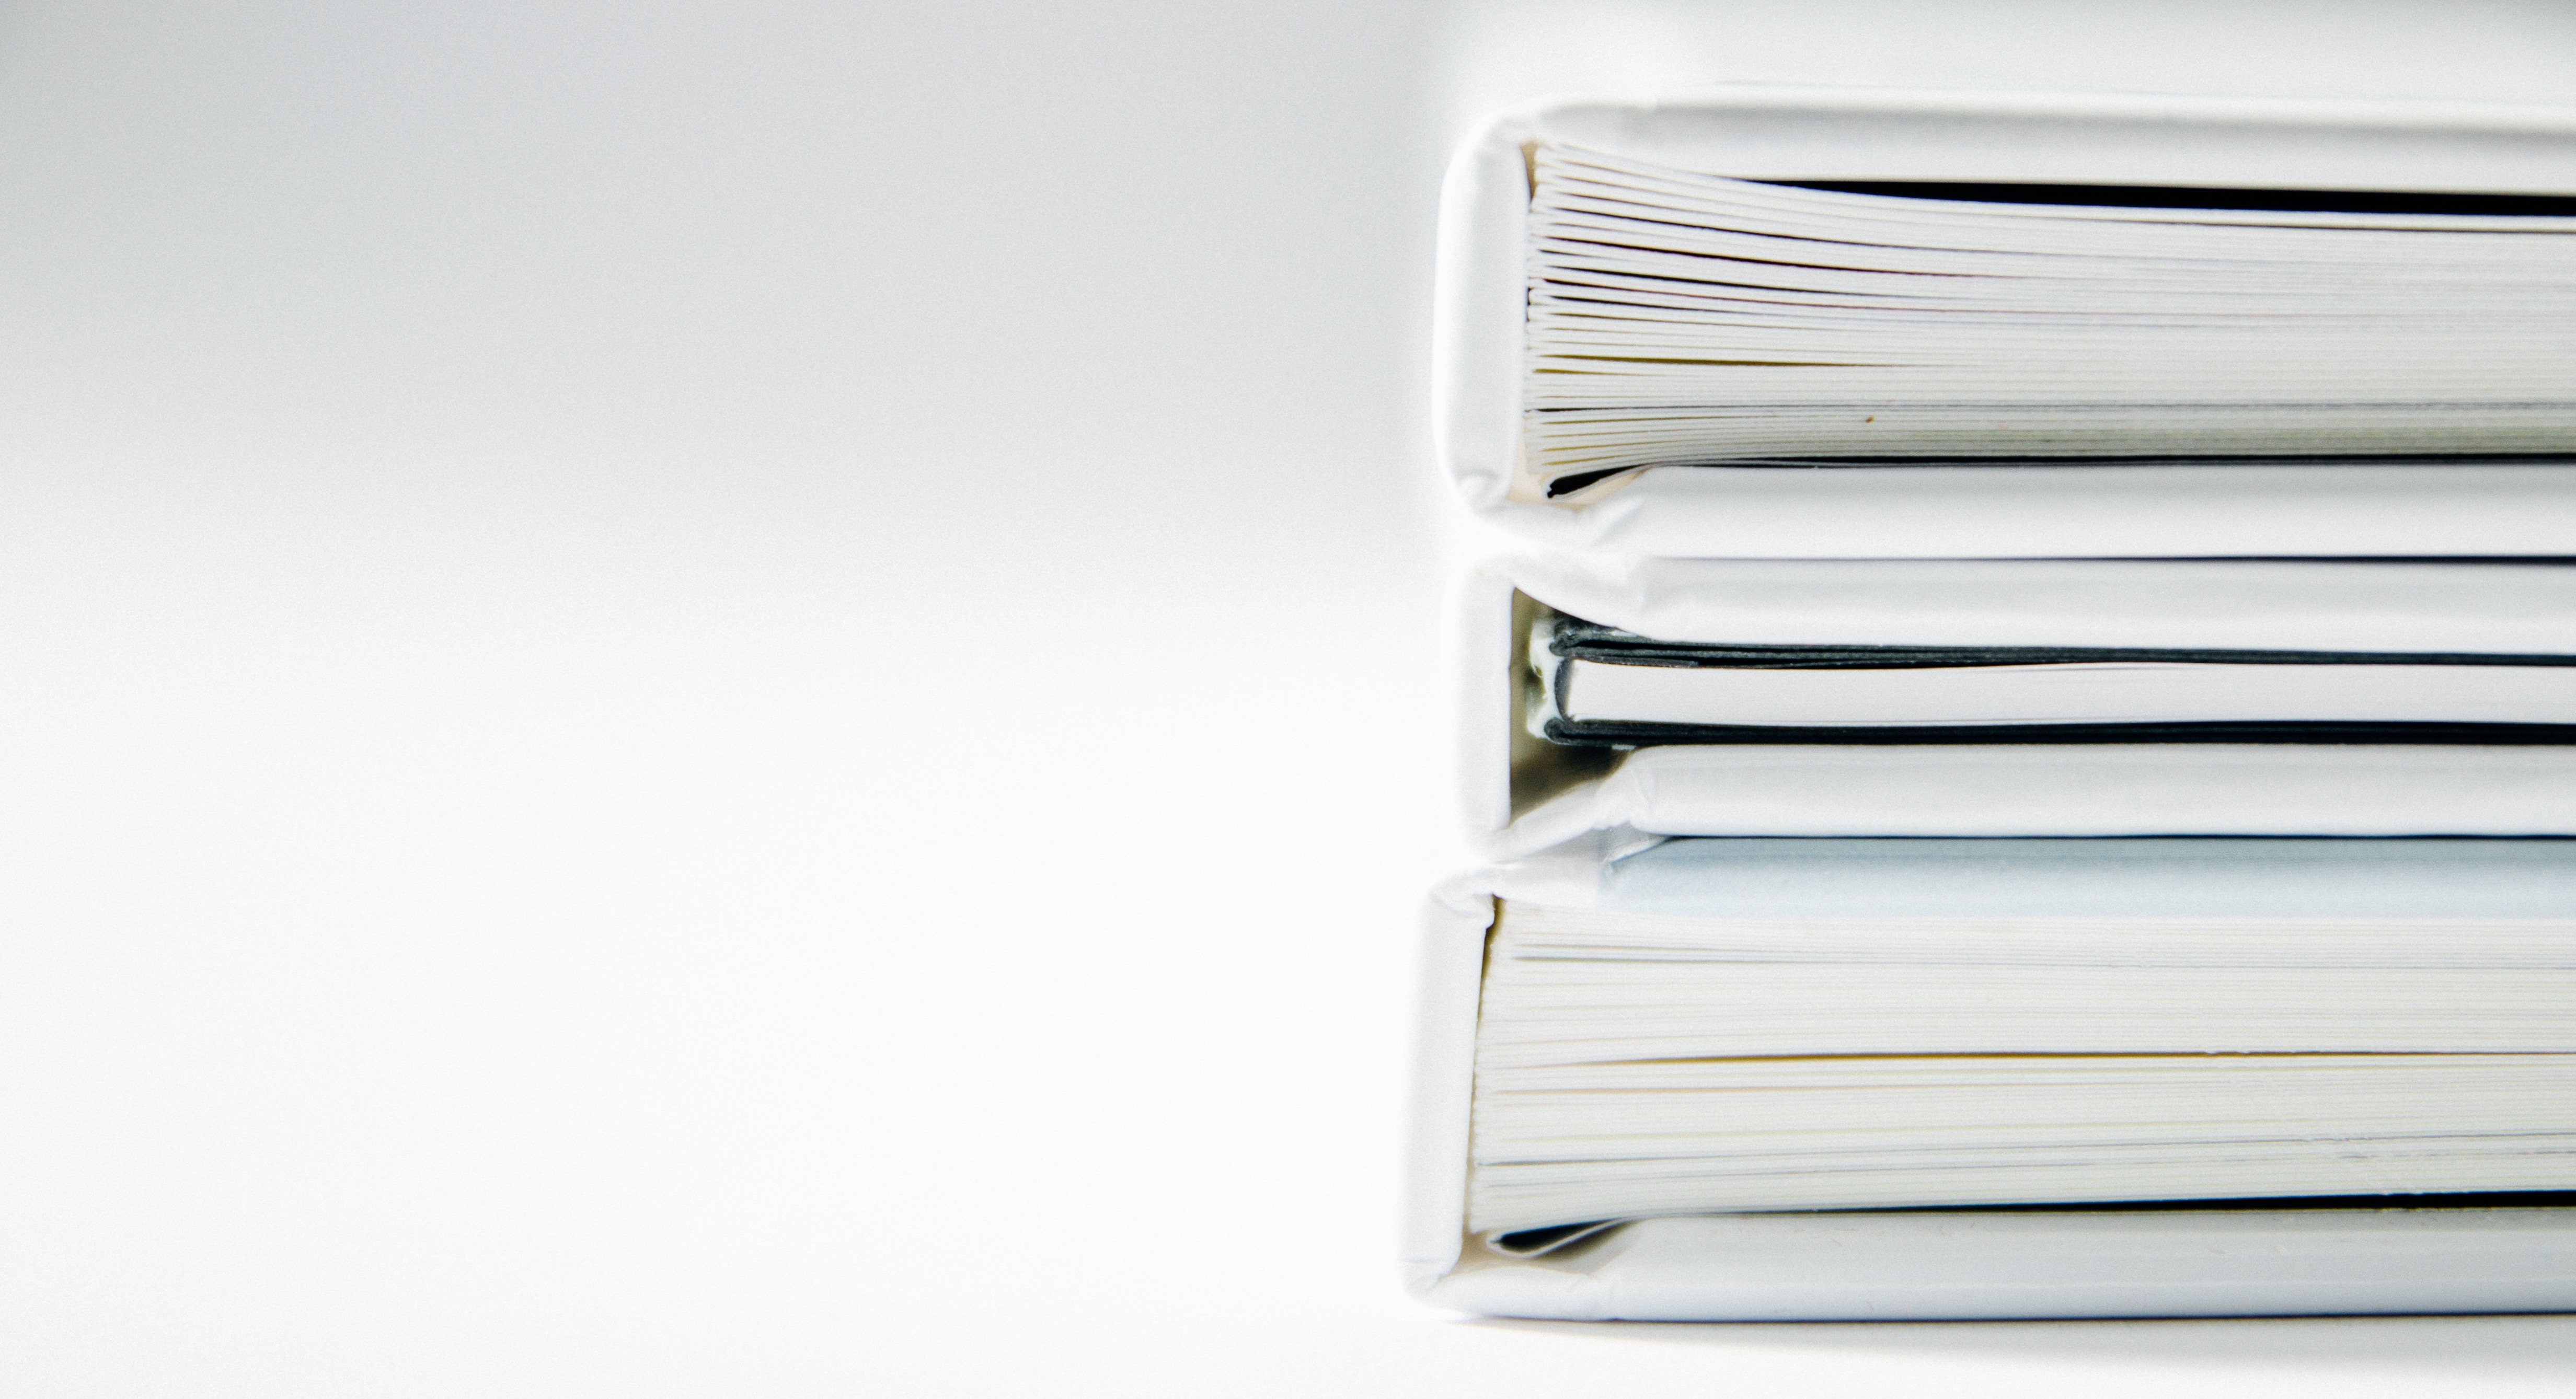 New NLRB Guidance On Employee Handbook Rules: A Return To Sanity